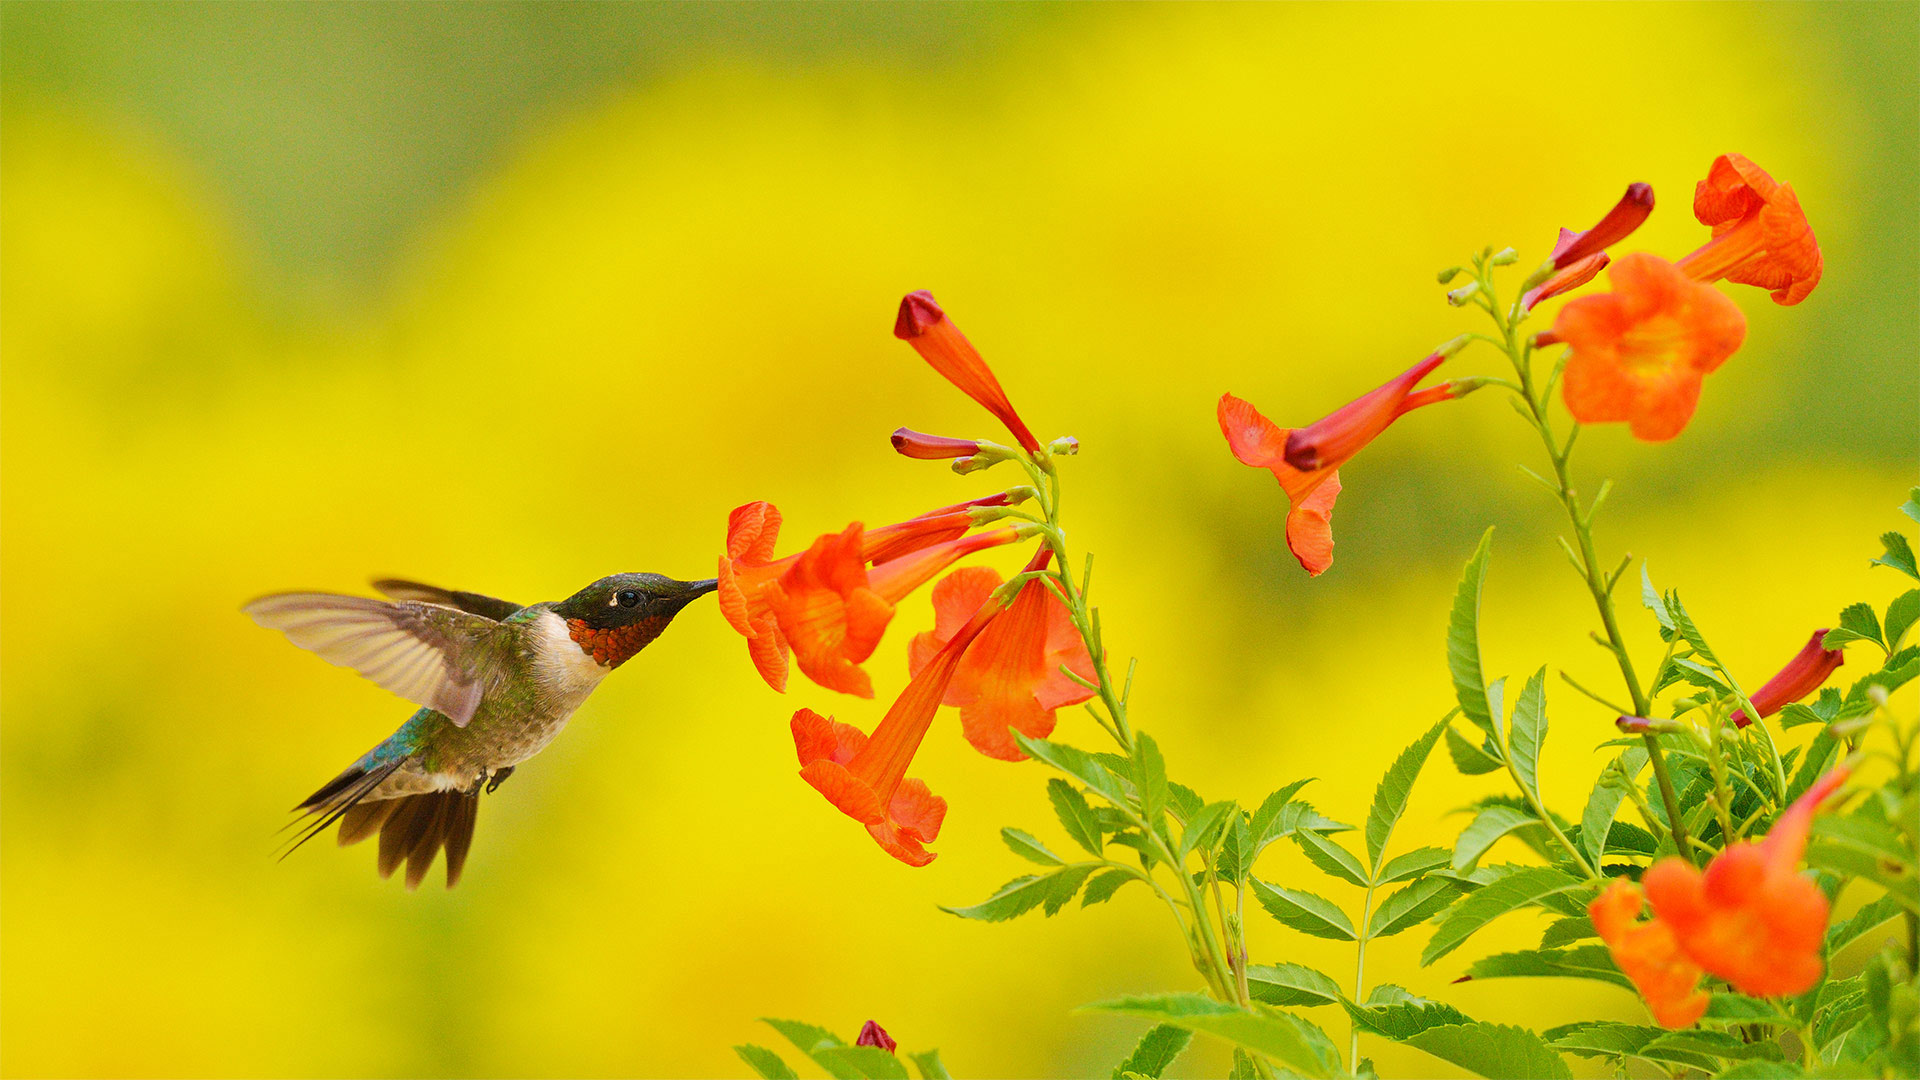 Ruby-throated hummingbird feeding on yellow bells in the Texas Hill Country (© Rolf Nussbaumer/Danita Delimont)(Bing United States)